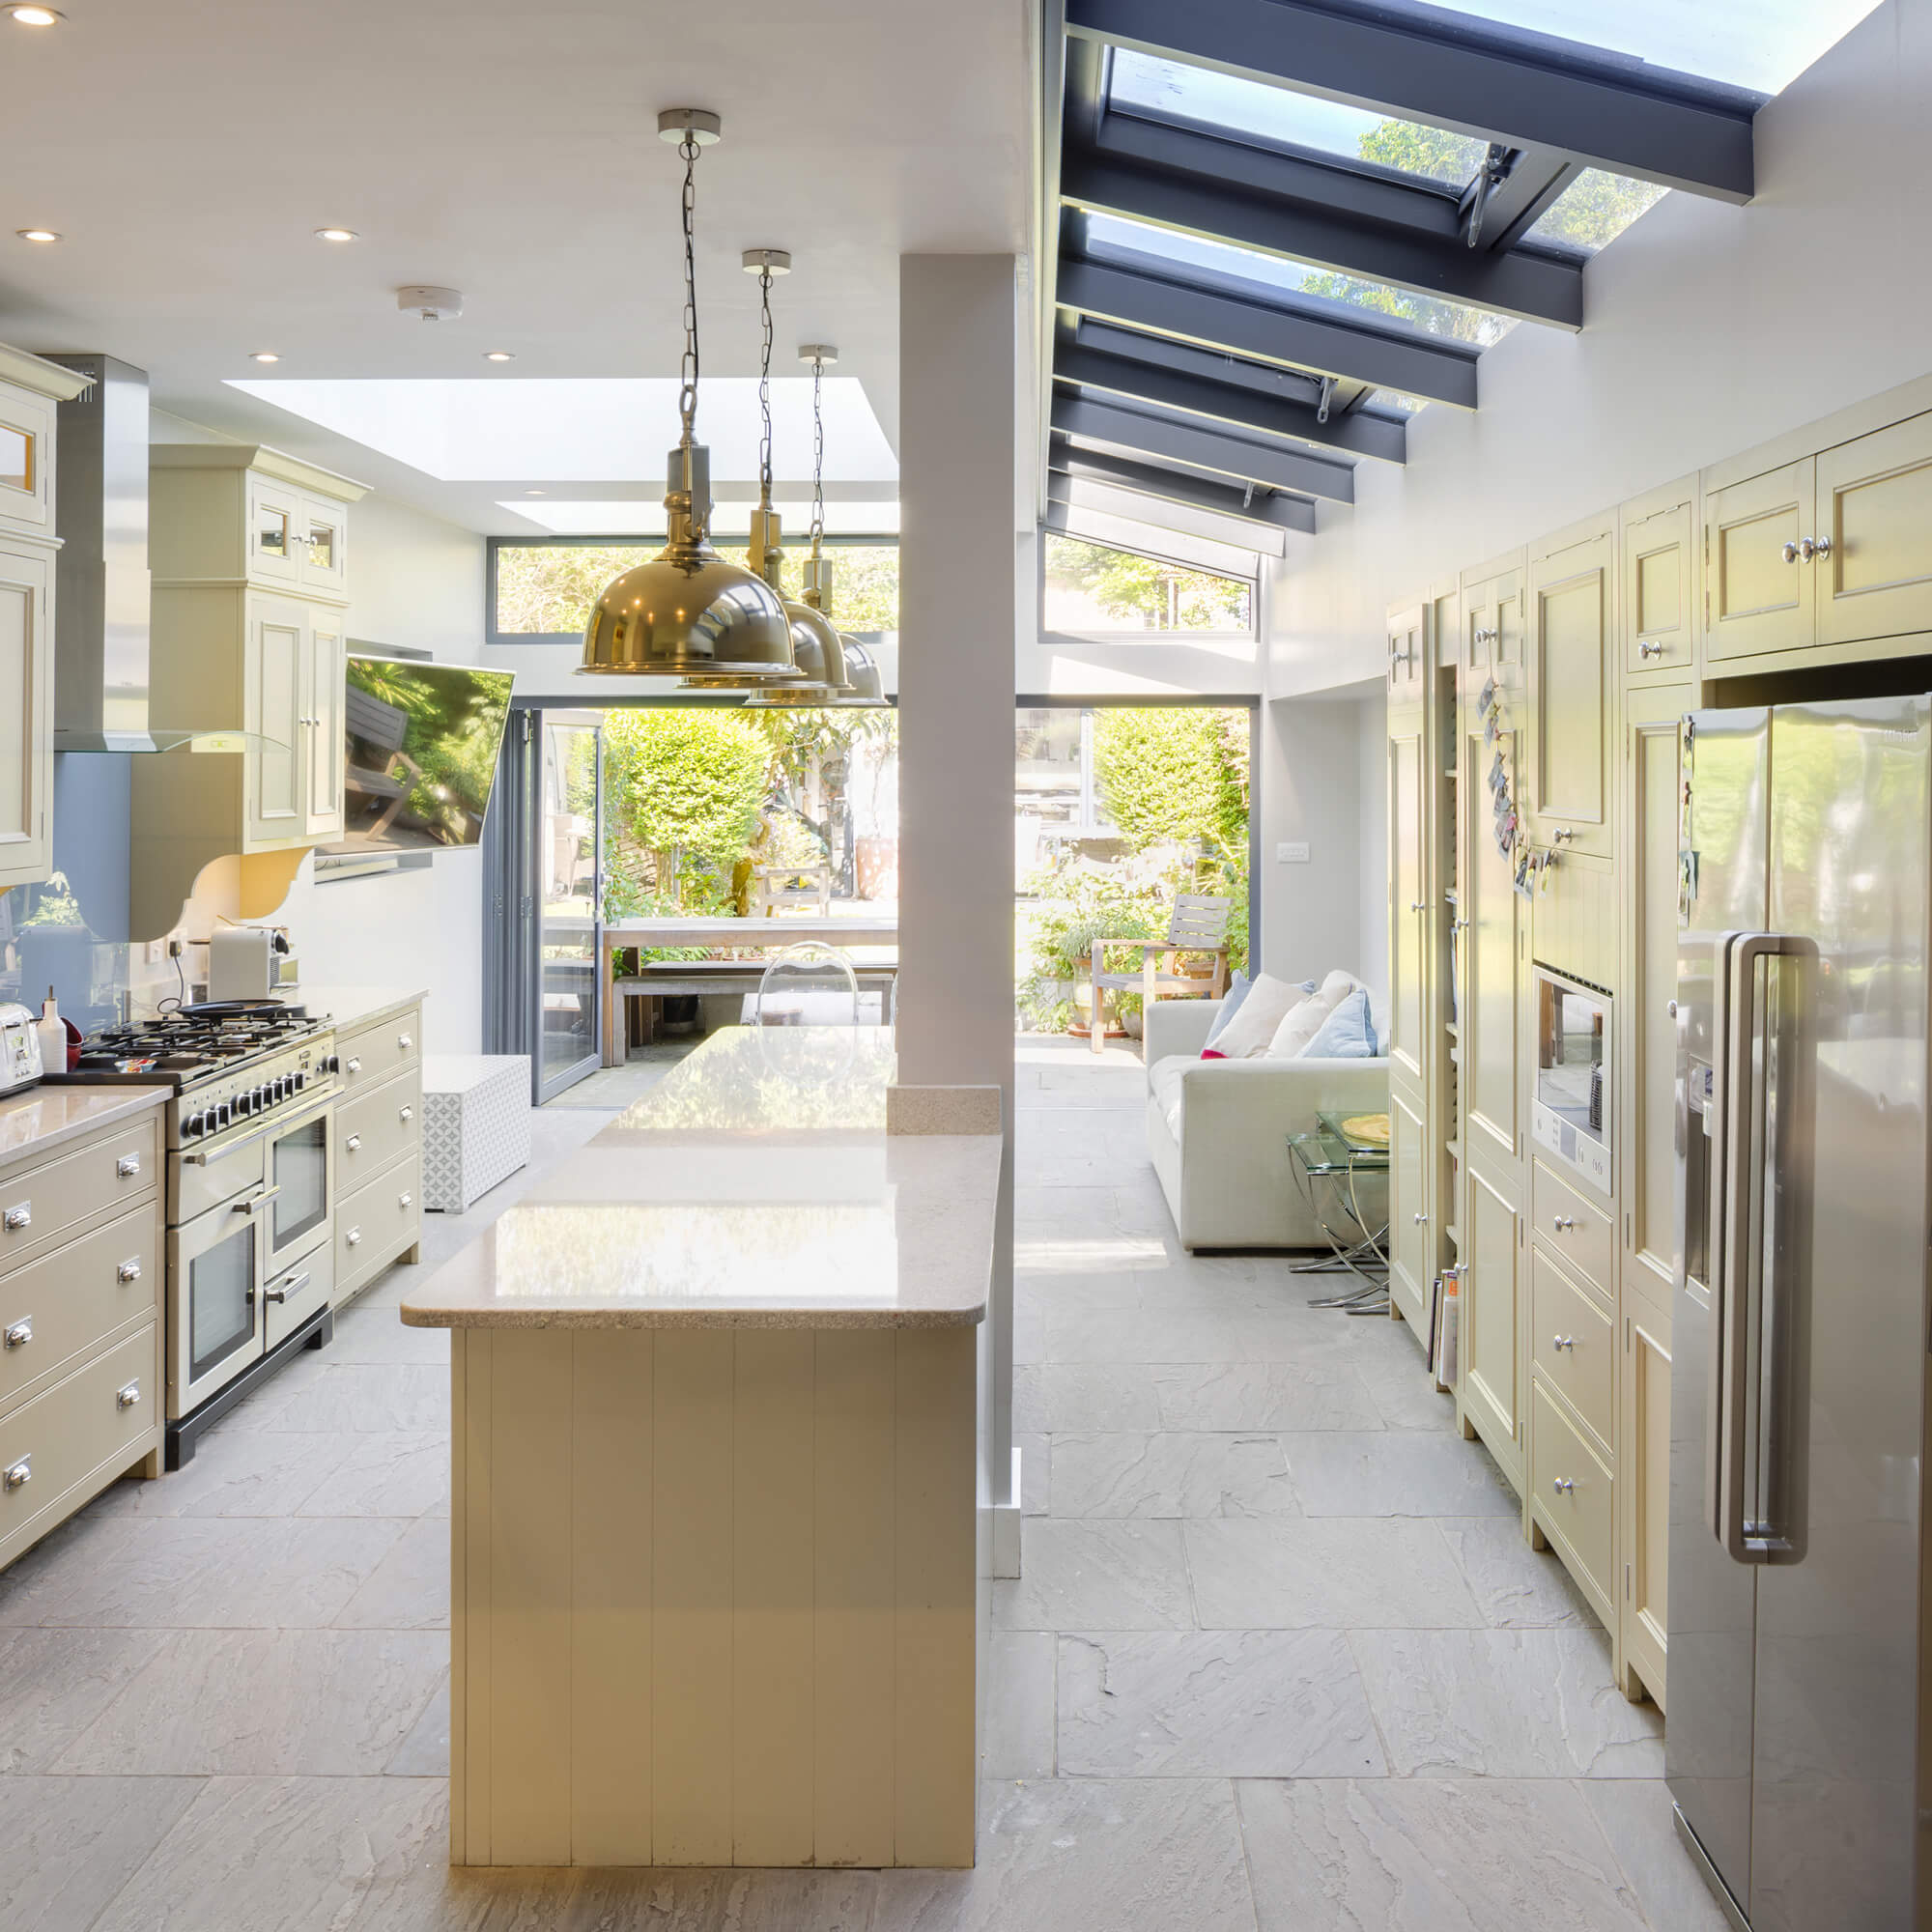 Marguerite Murdoch Architects - Based in Teddington, Richmond Upon Thames - Loft Conversion, Kitchen Extension and Total Conversion